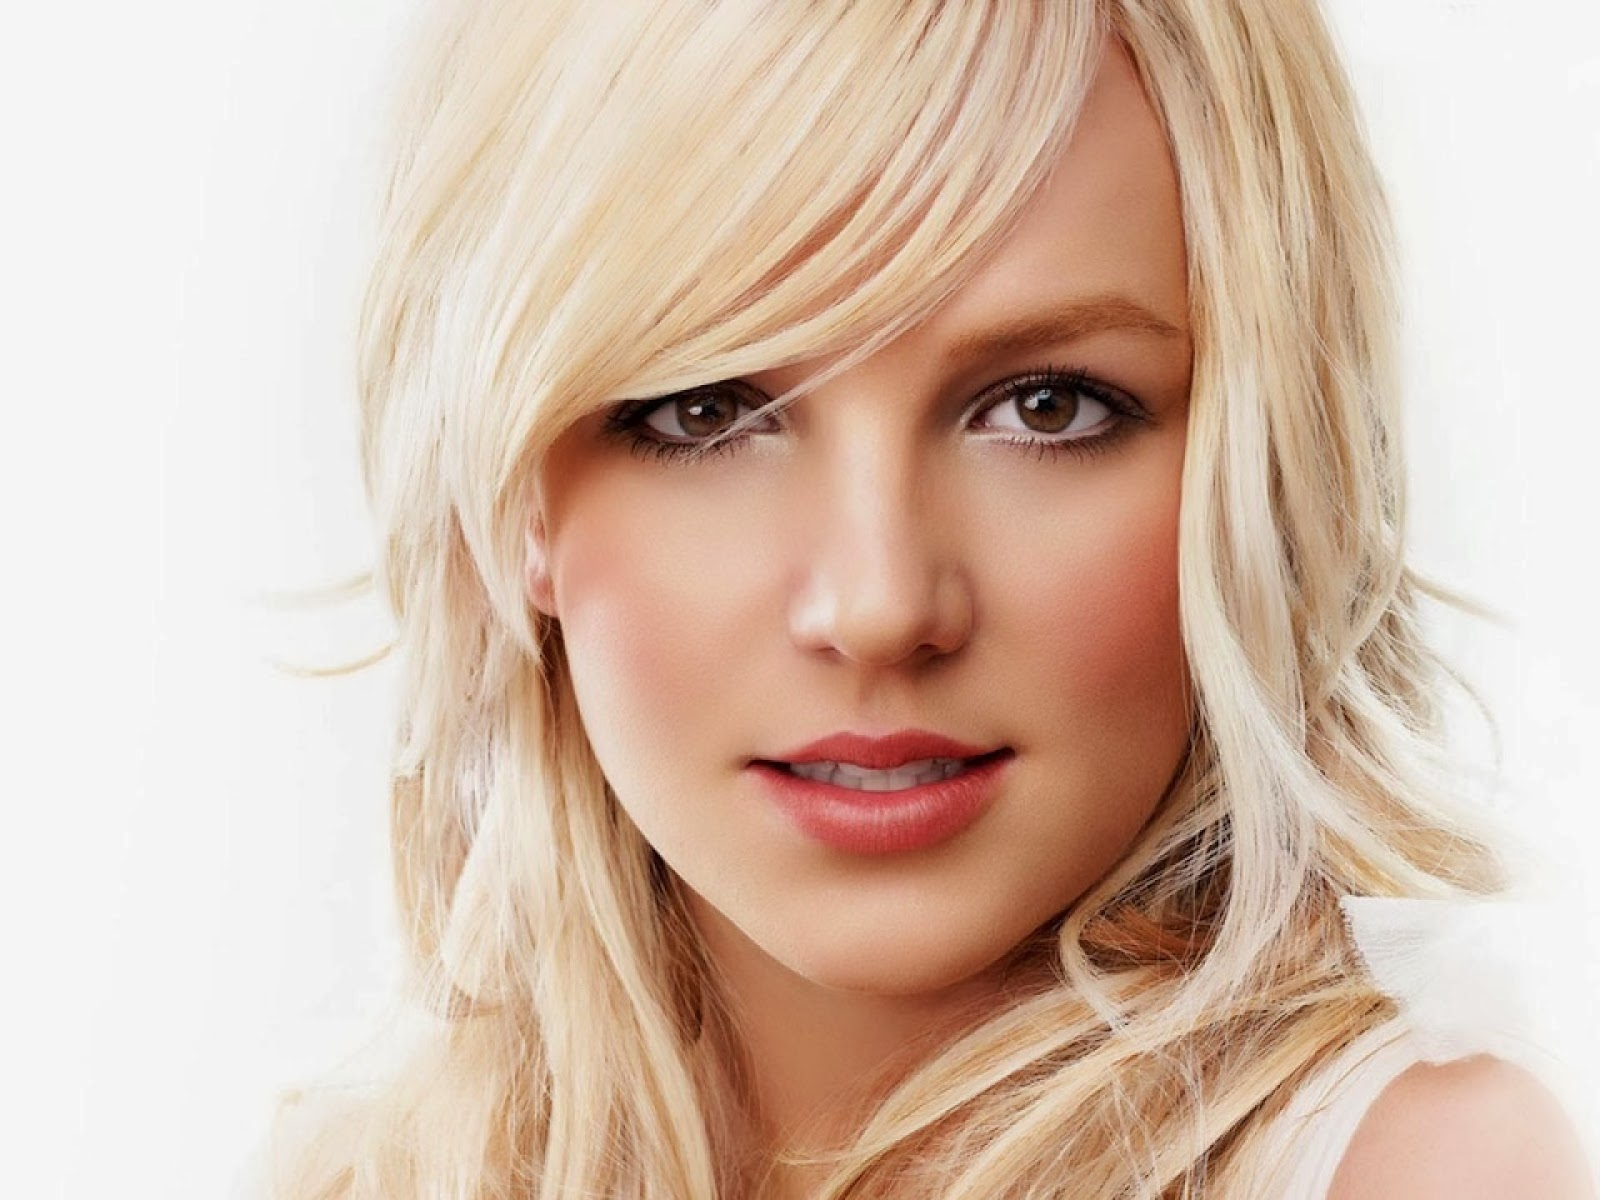 Britney+Spears+Hd+Wallpapers+Free+Download034